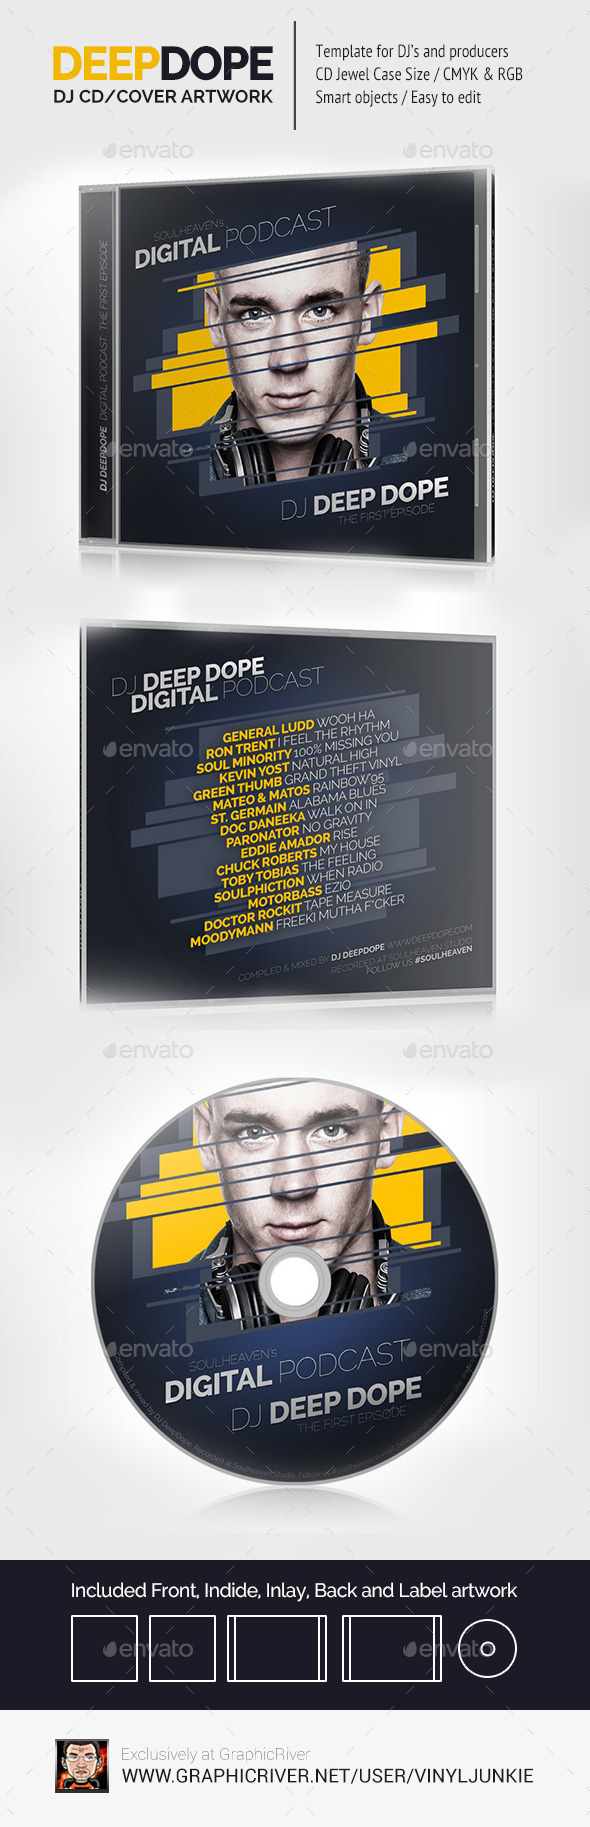 DeepDope - DJ Mix CD Cover Artwork PSD